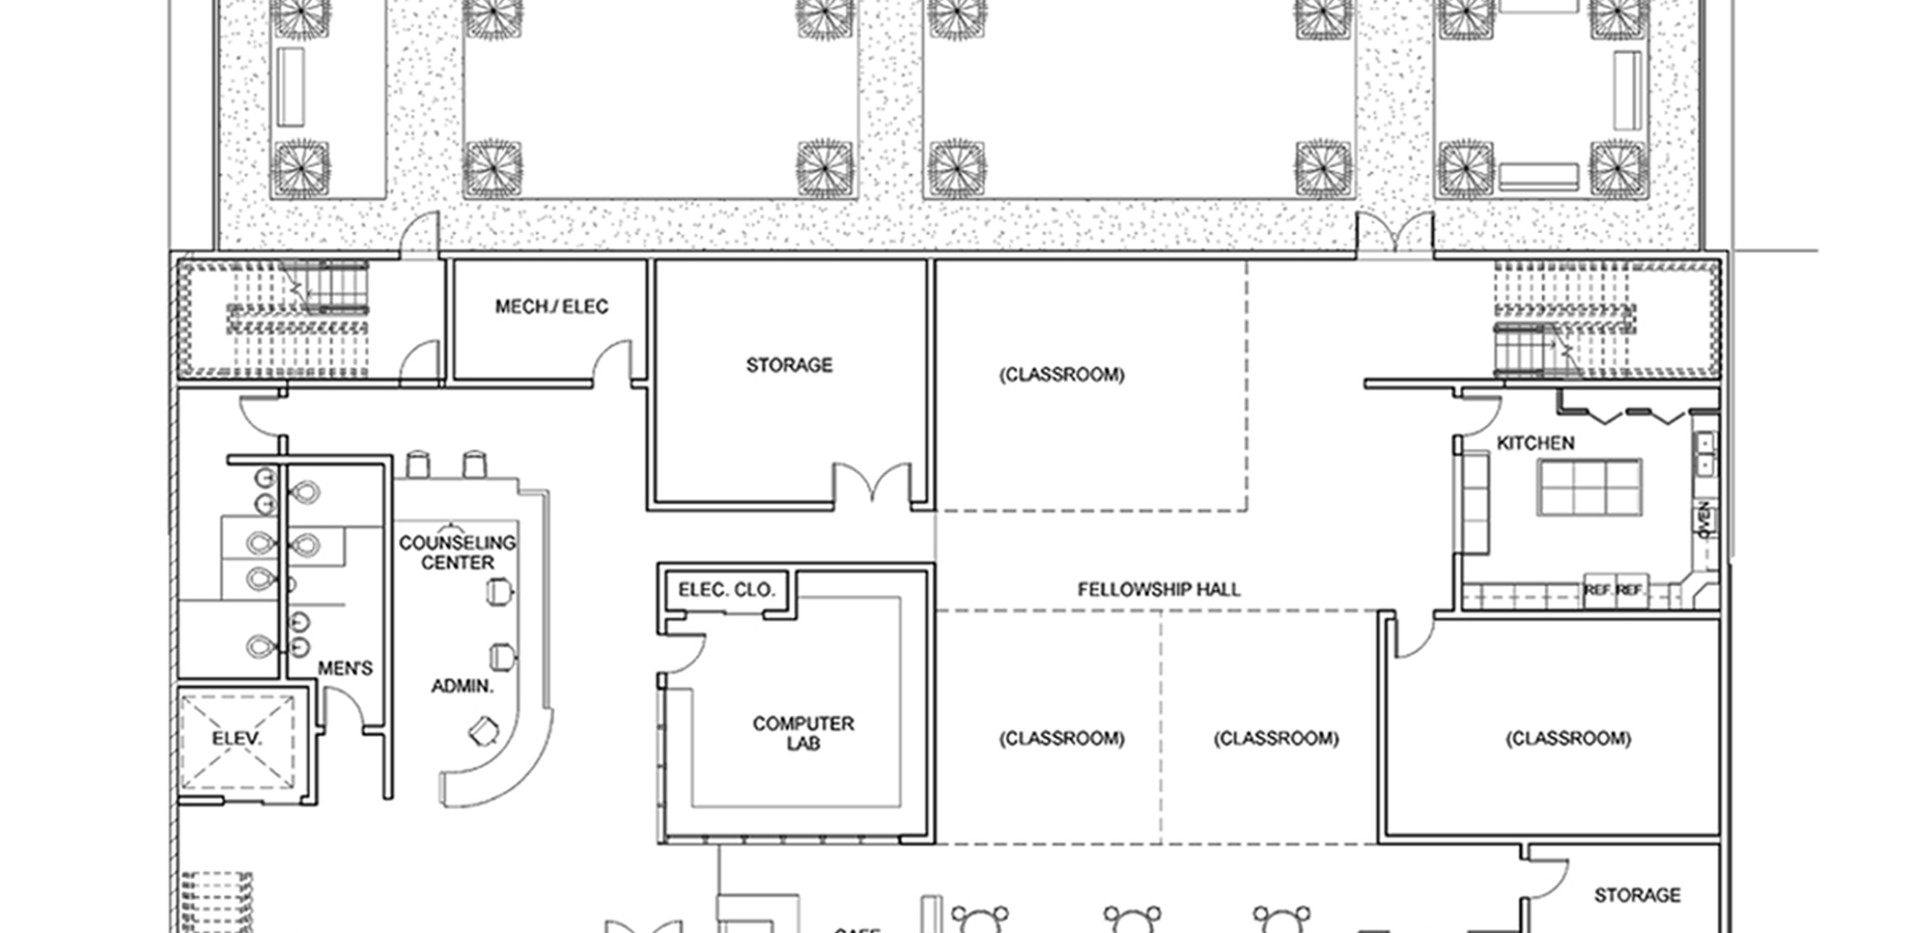 Sanctuary Church 1st Floor Plan